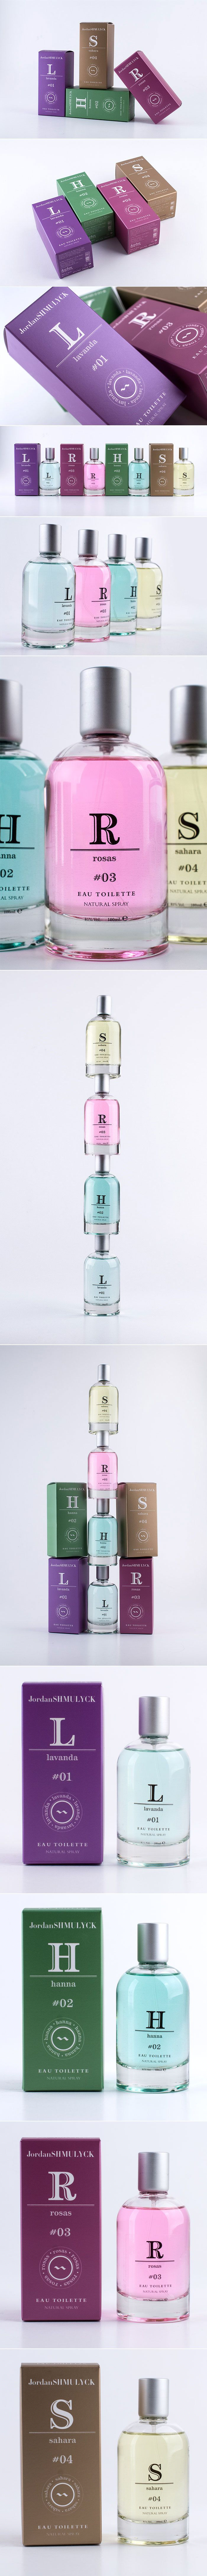 Perfume packaging design ideas. I love the typography on the logo and boxes. Print packaging design.